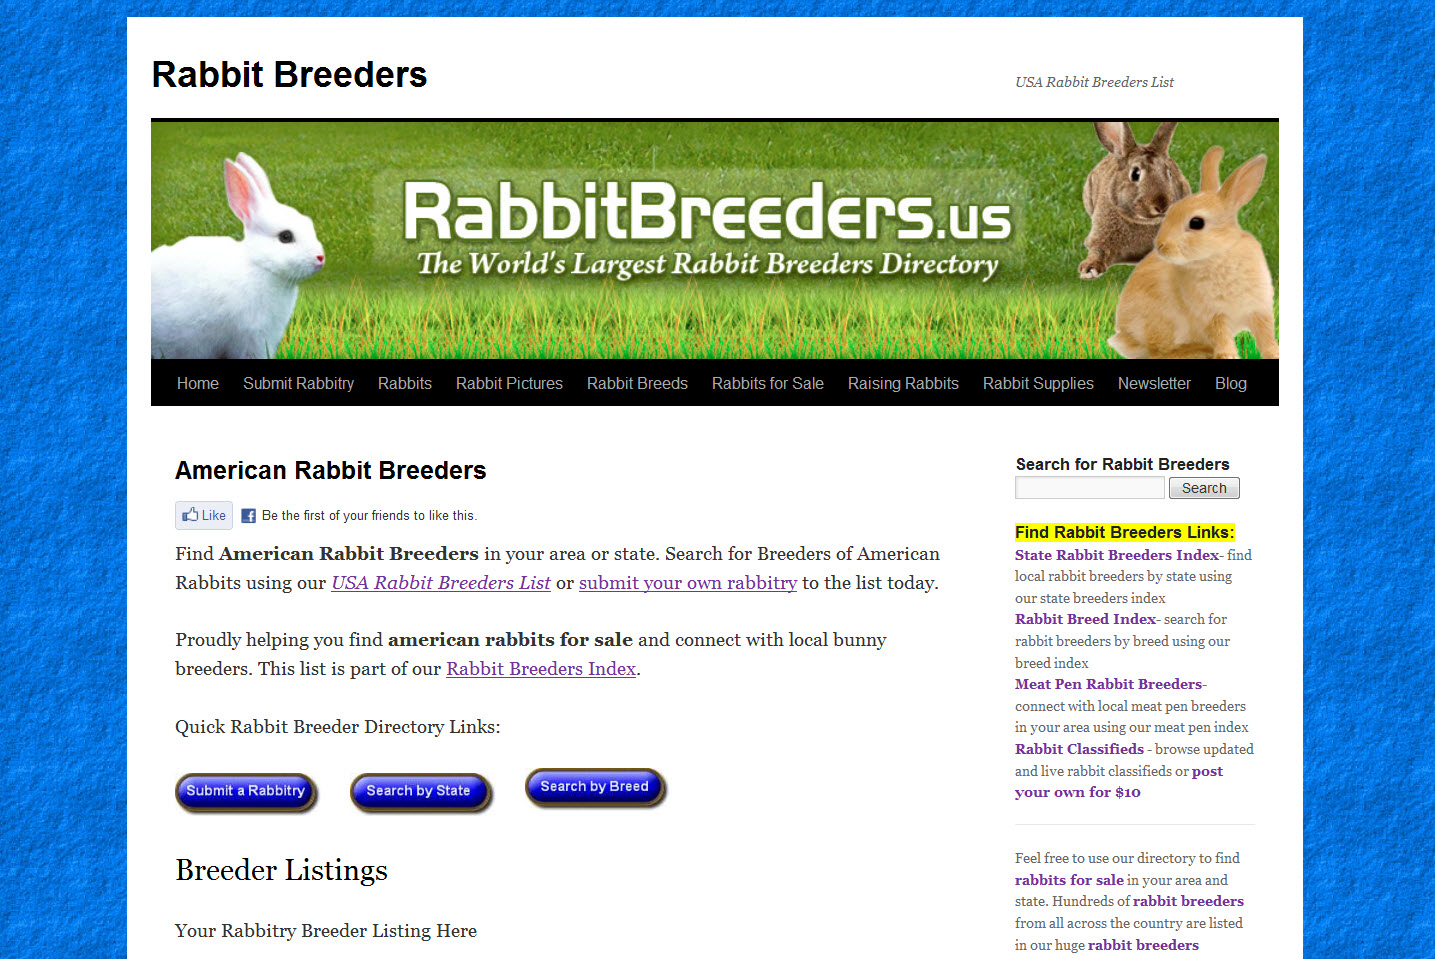 American Rabbits for Sale